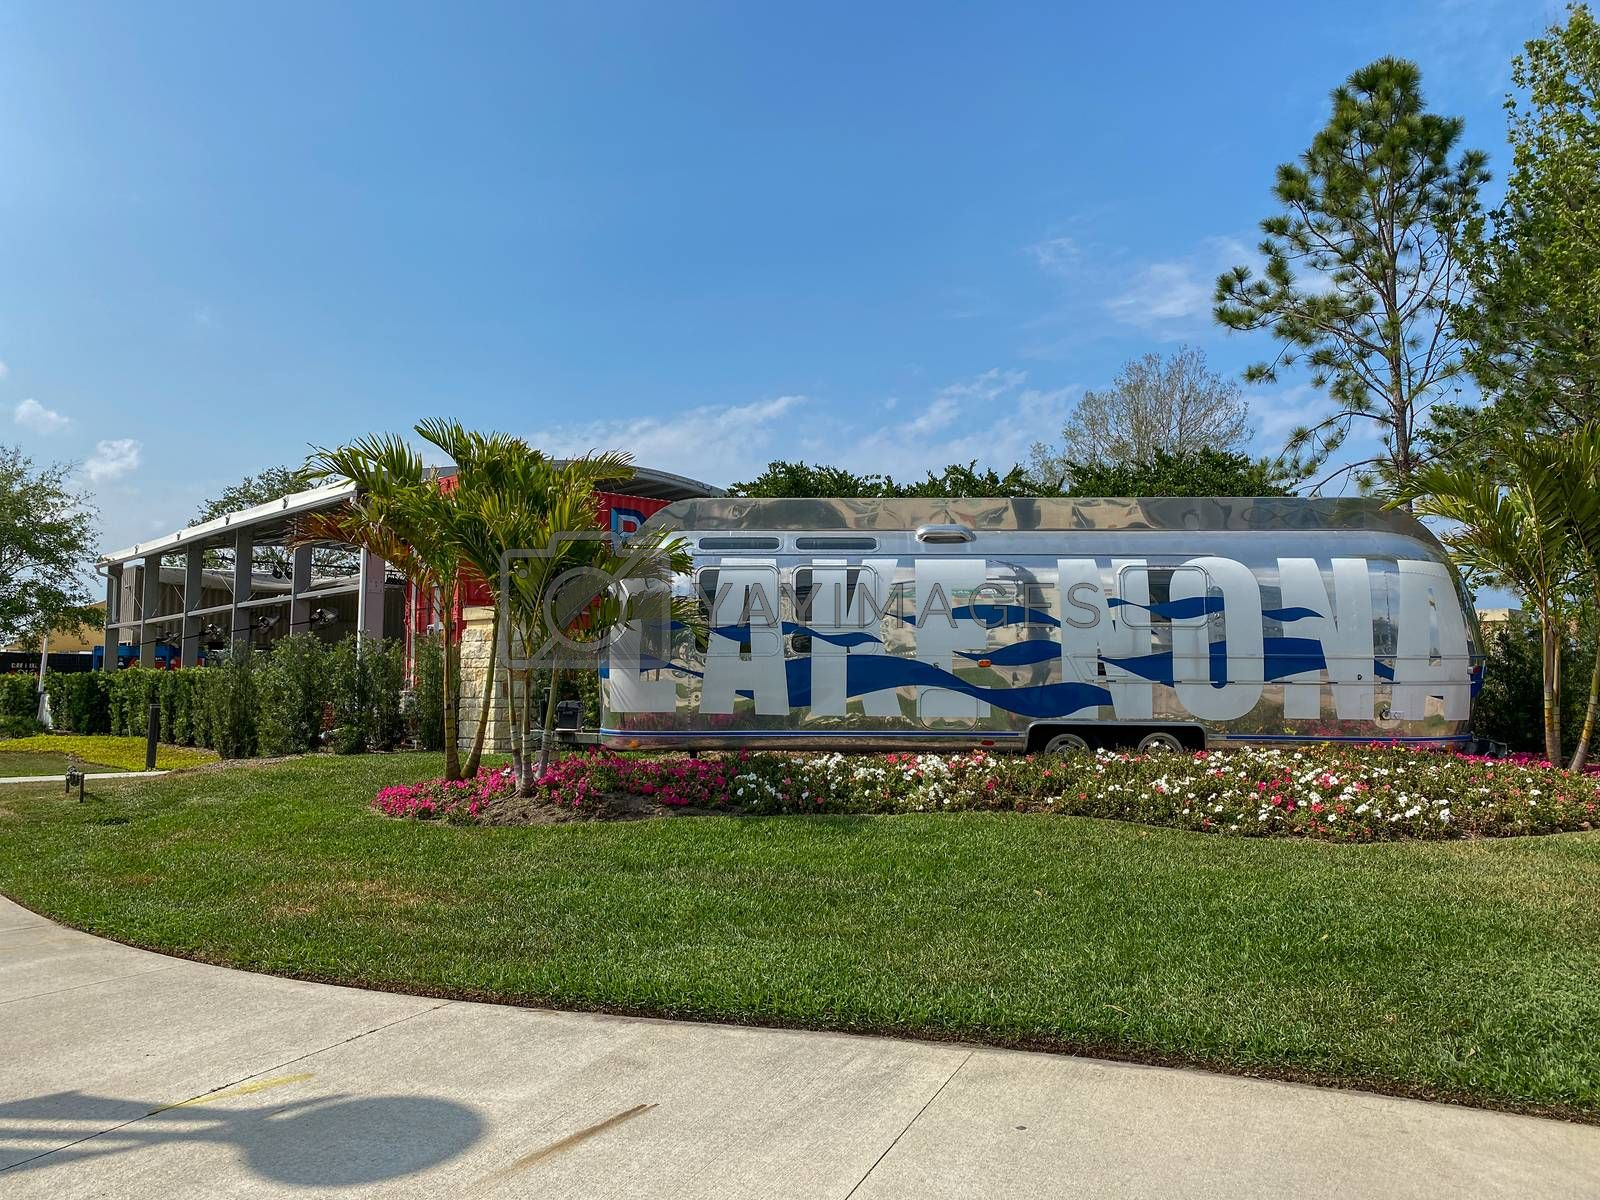 Orlando, FL/USA-4/10/20:  An Airstream Trailer that is painted with the words Lake Nona is the entrance to the Town Center at Lake Nona in Orlando, Florida.